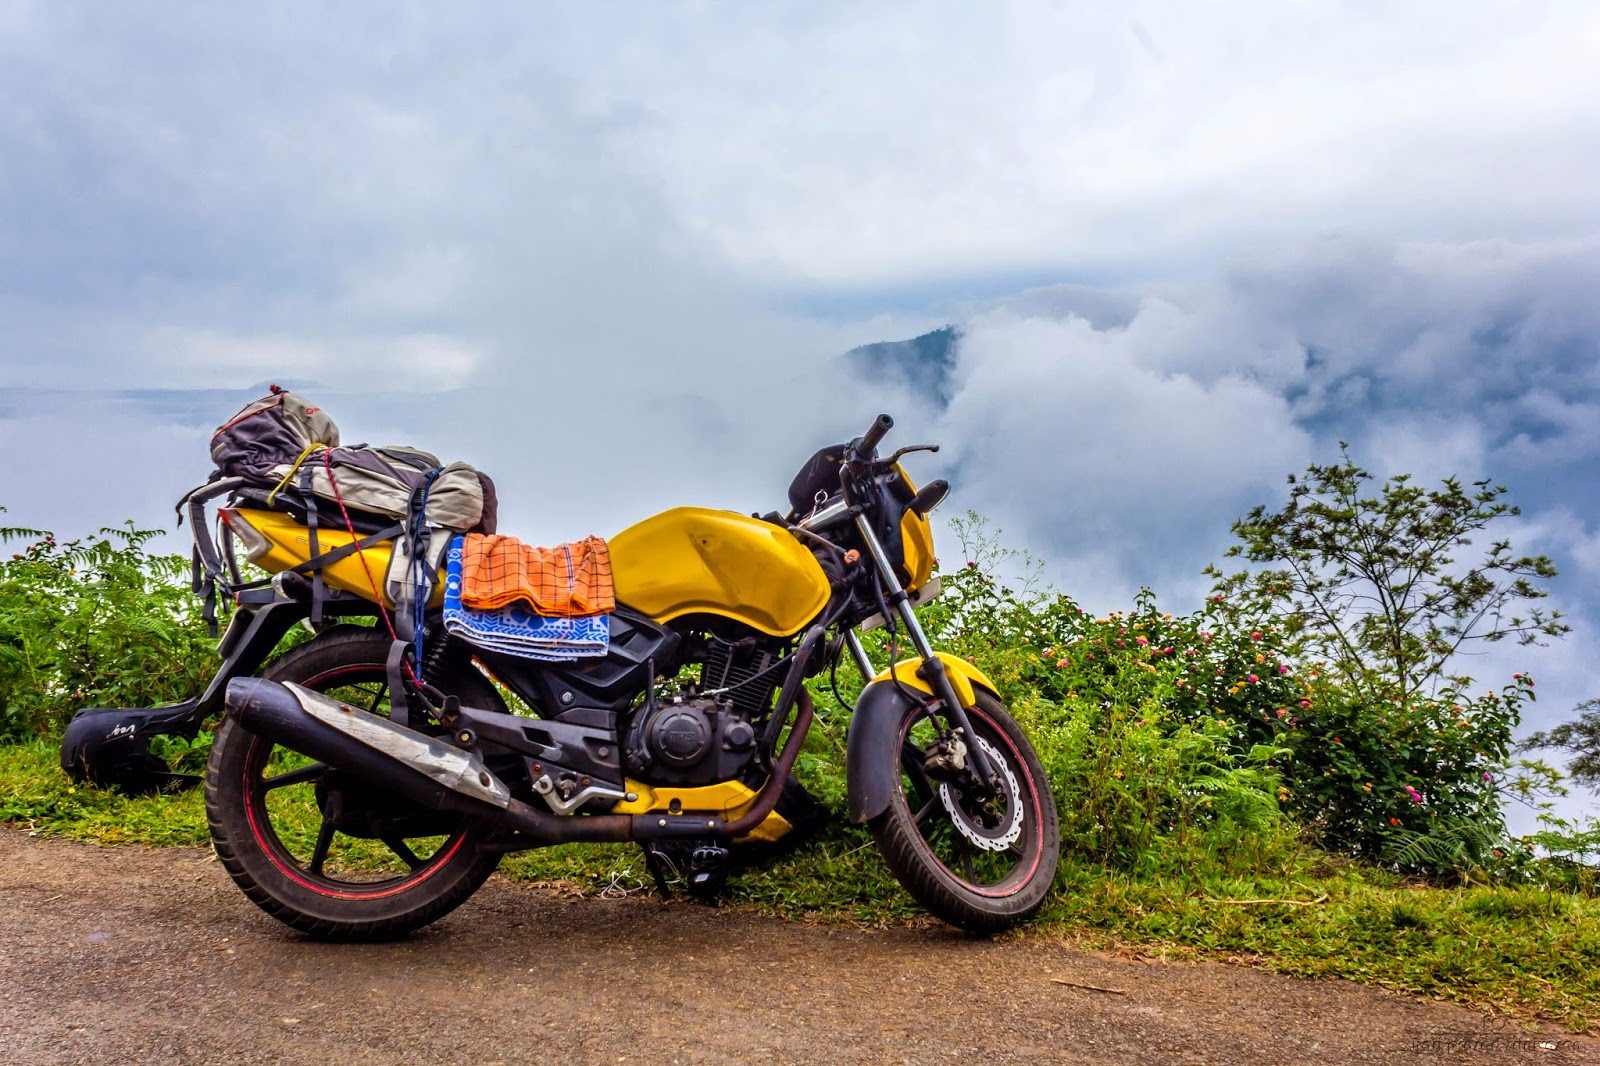 Riding above the clouds. Bike in the foreground and a mountain covered in clouds in the background.